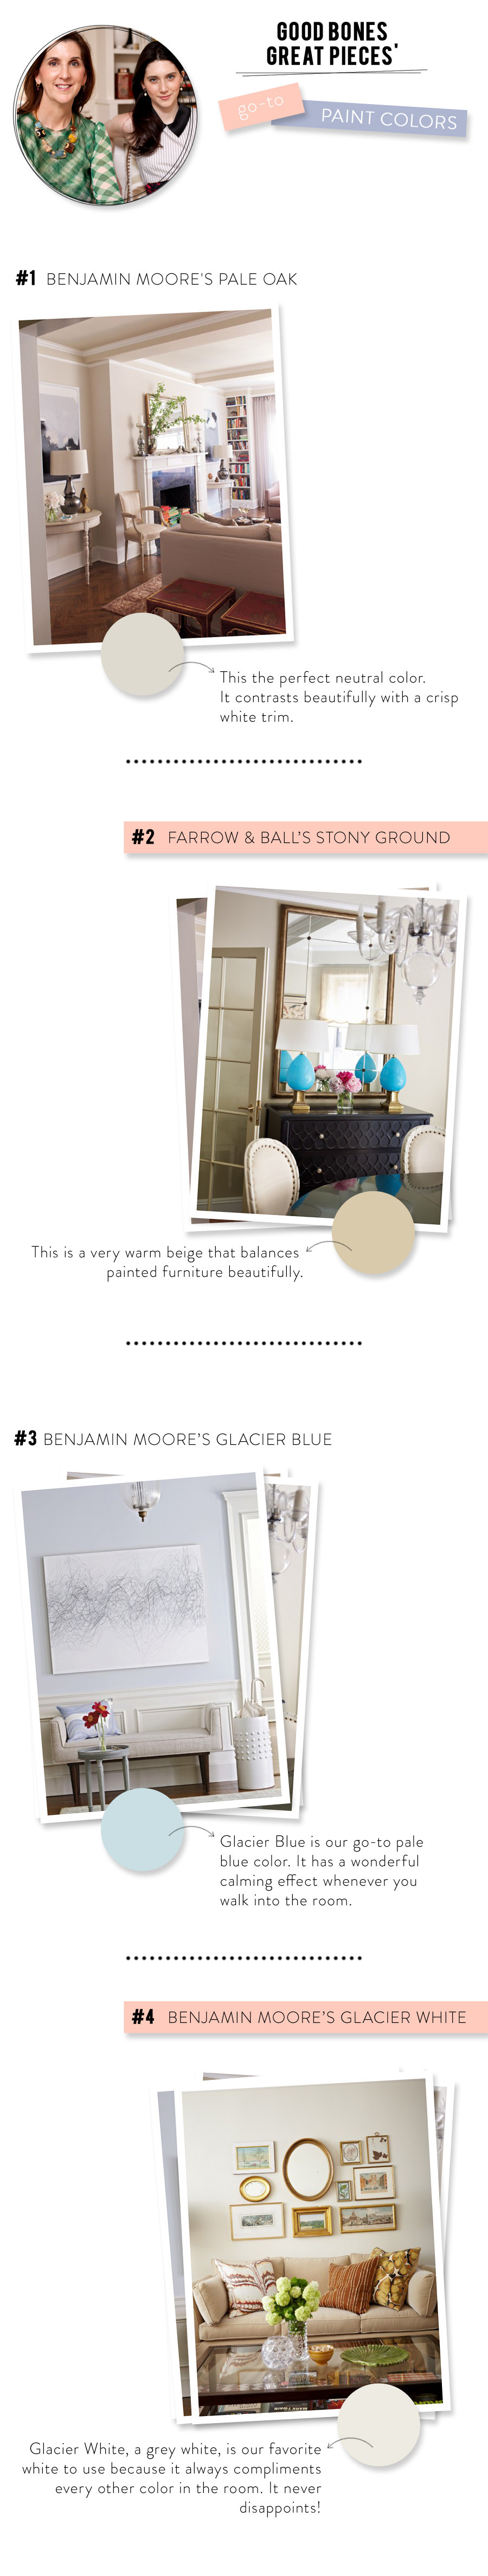 good bones great pieces go to paint colors 30th decorating and